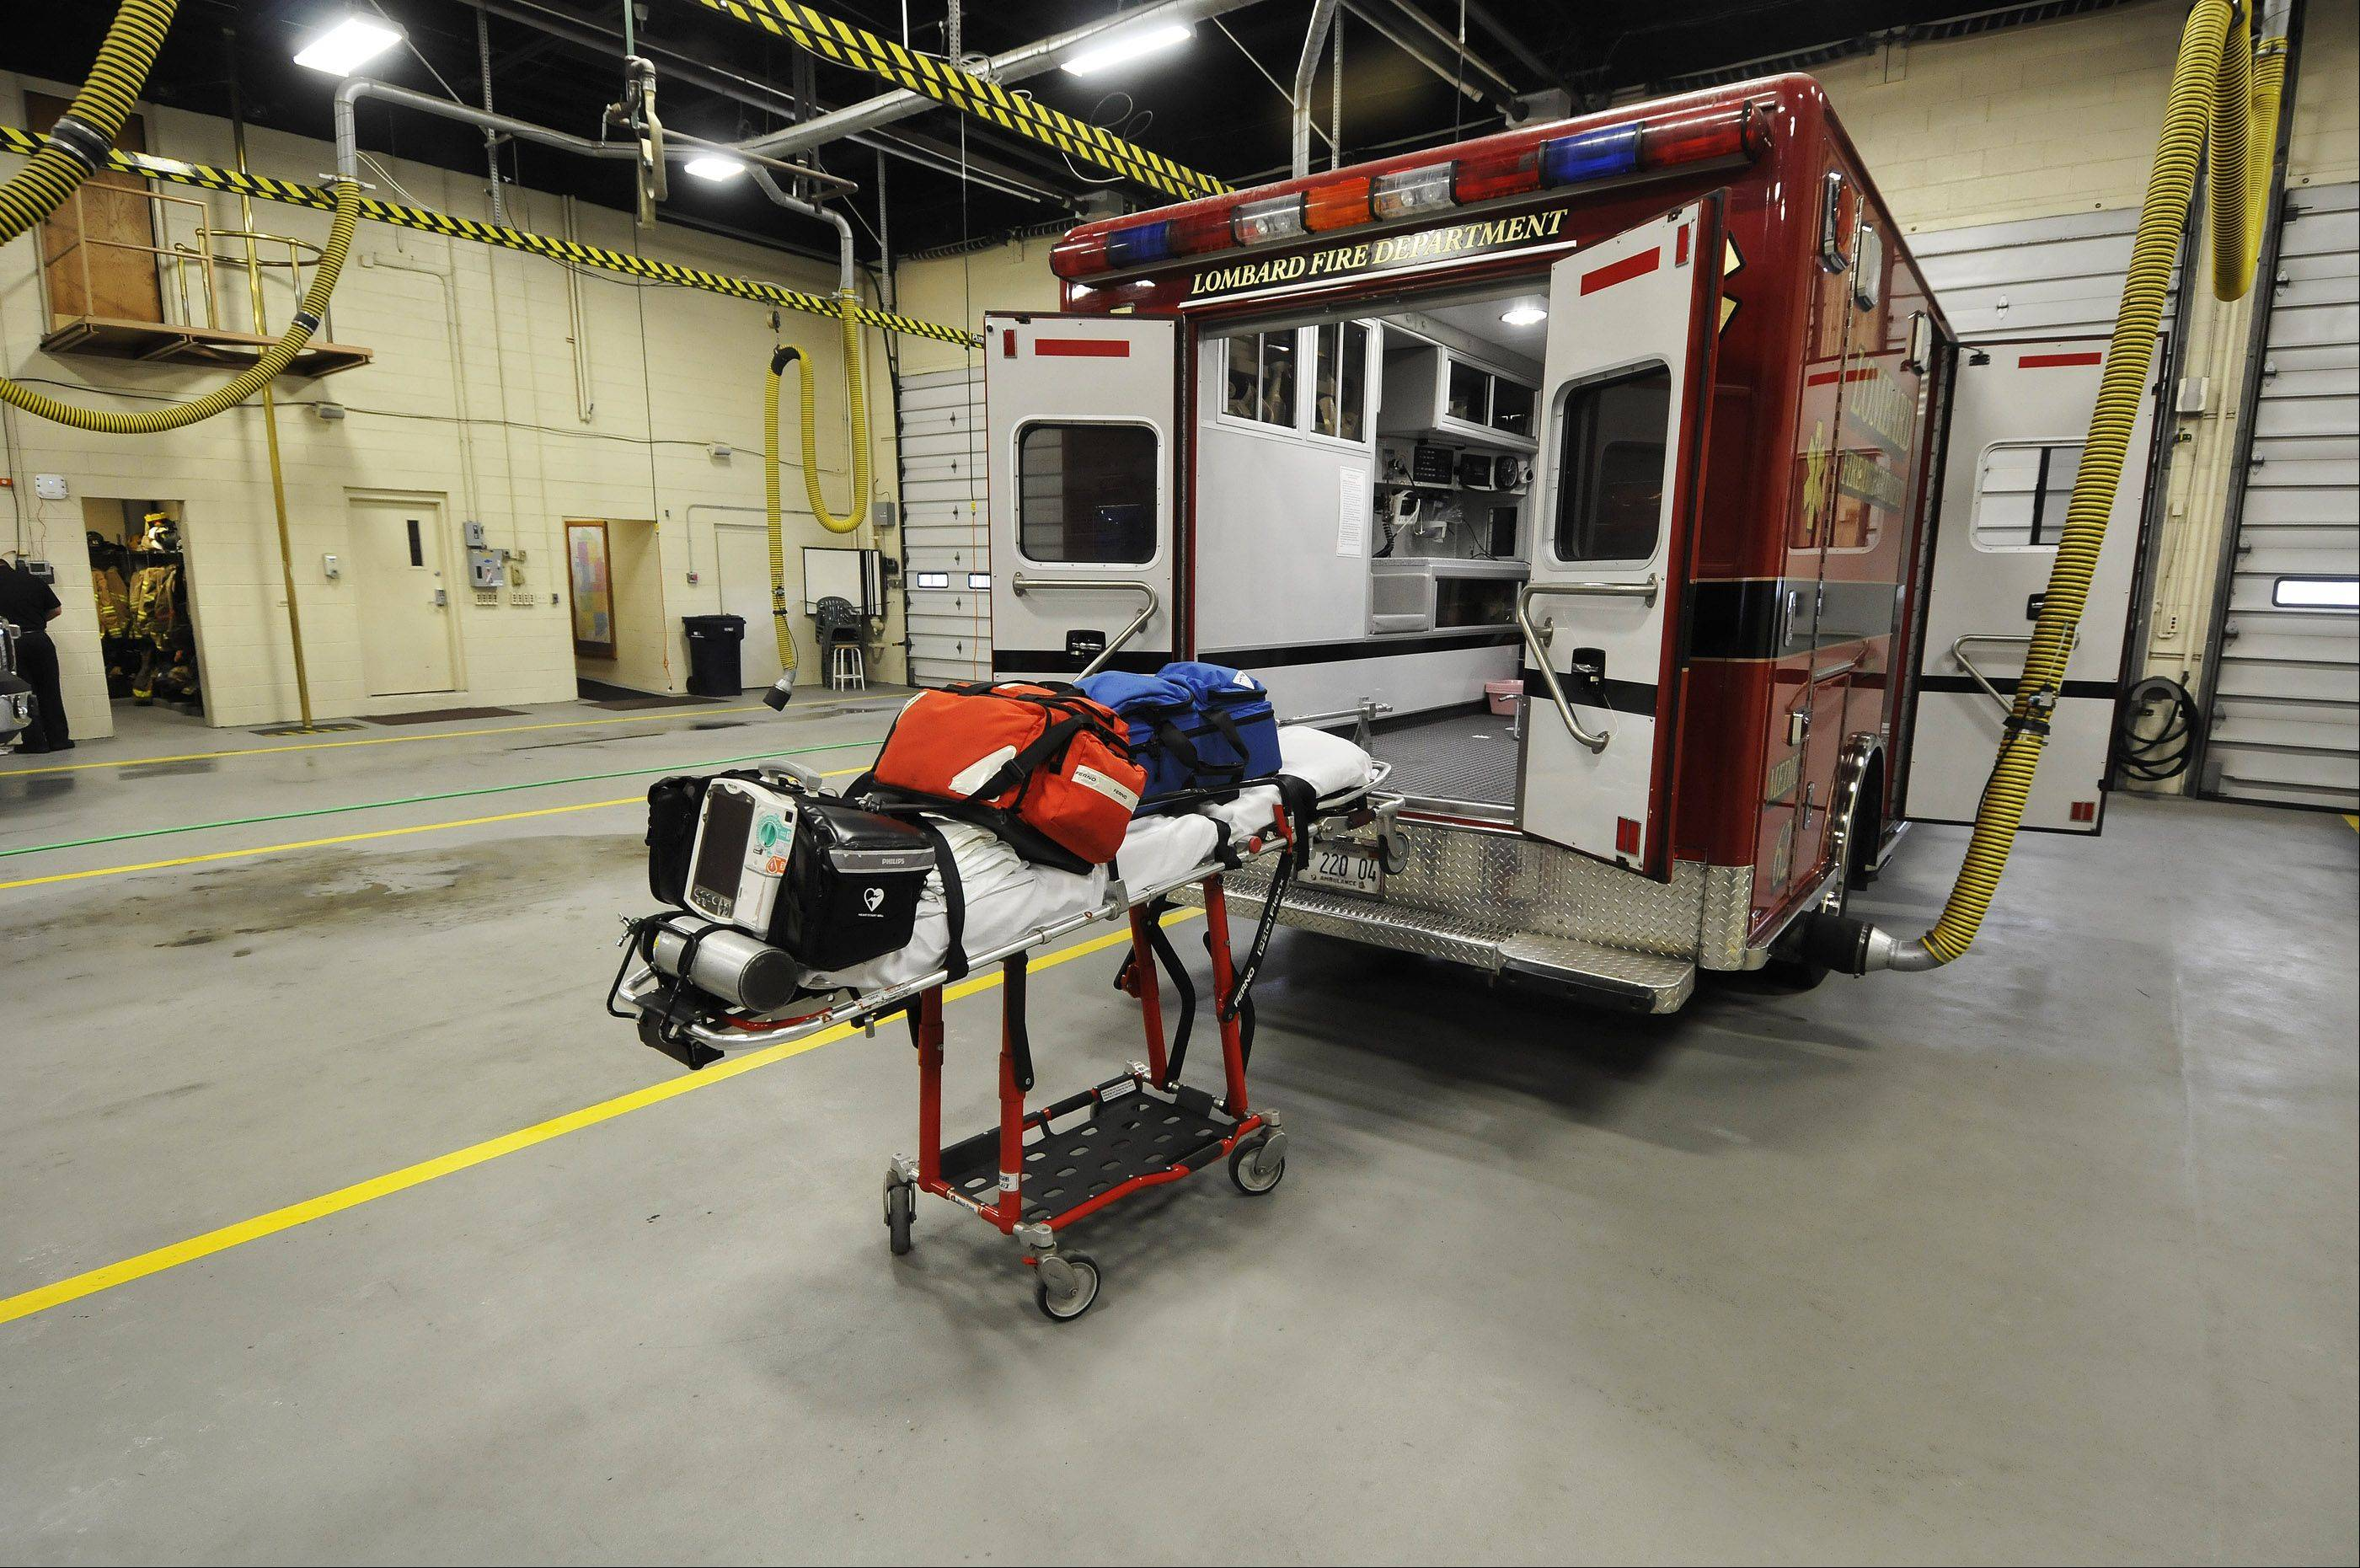 The Lombard Fire Department aims to have three ambulances staffed and ready to respond to medical emergencies at all times, but when personnel falls below 16 firefighters on a shift, one ambulance remains unstaffed.